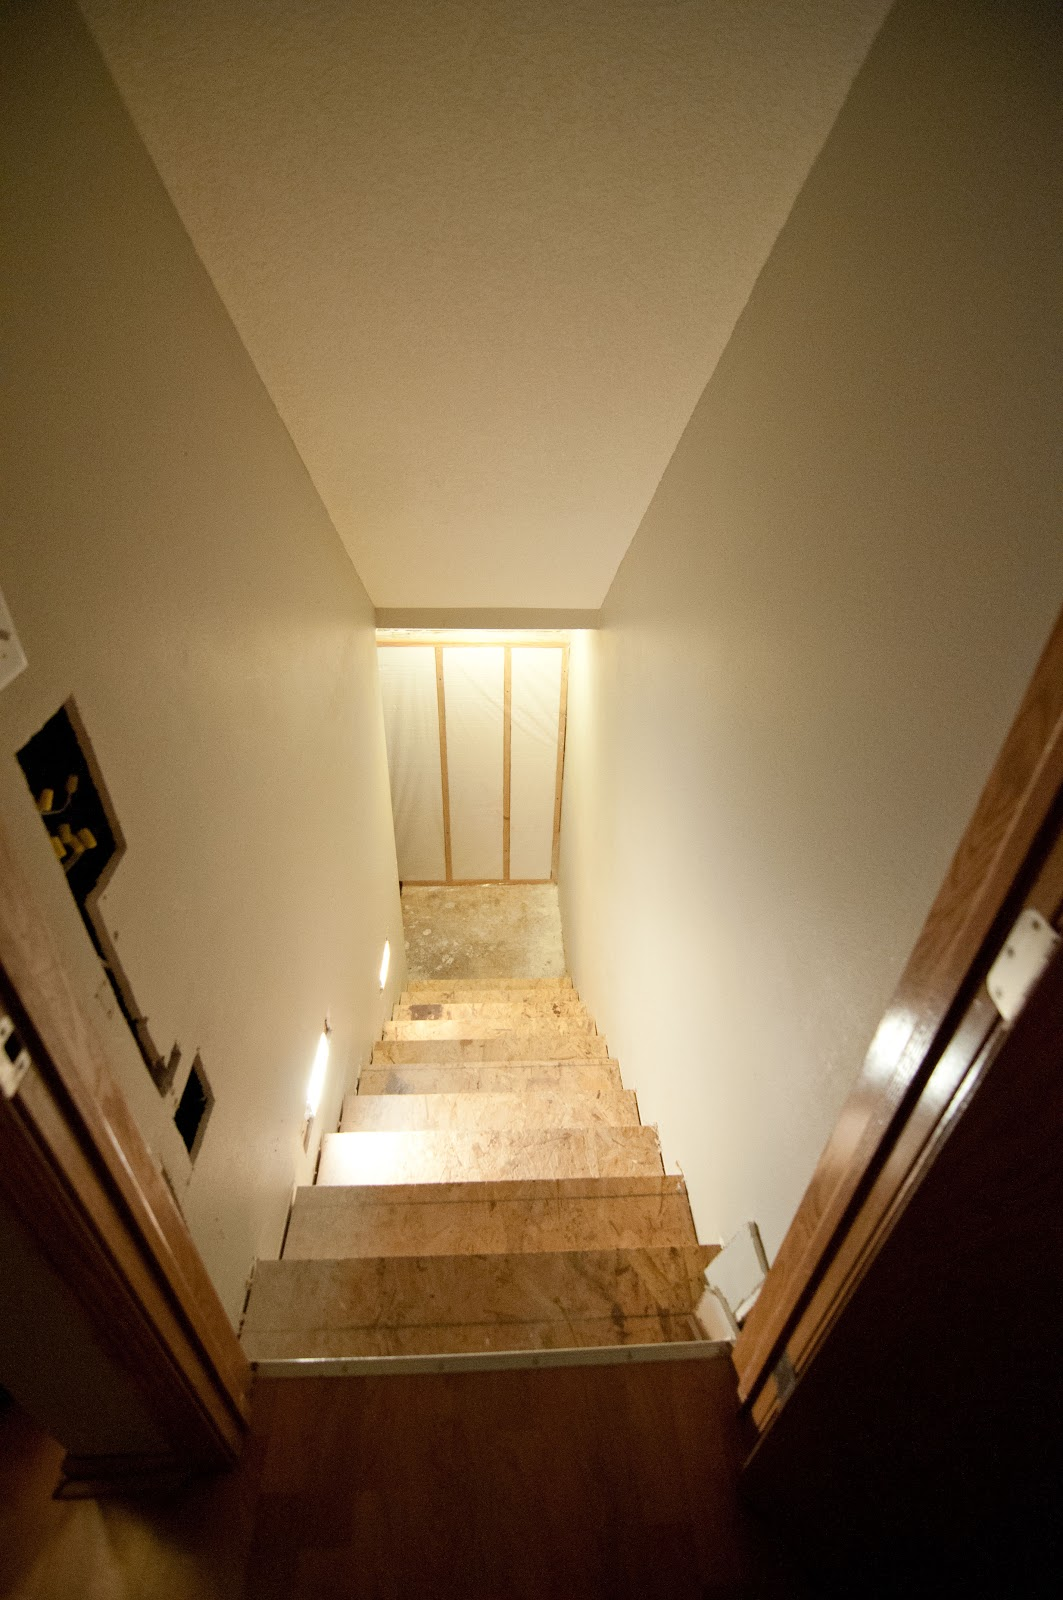 i just cant say it enough how impressed and proud i am of jon and all his work hes done in the basement he sure can be proud of his work when basement stairway lighting